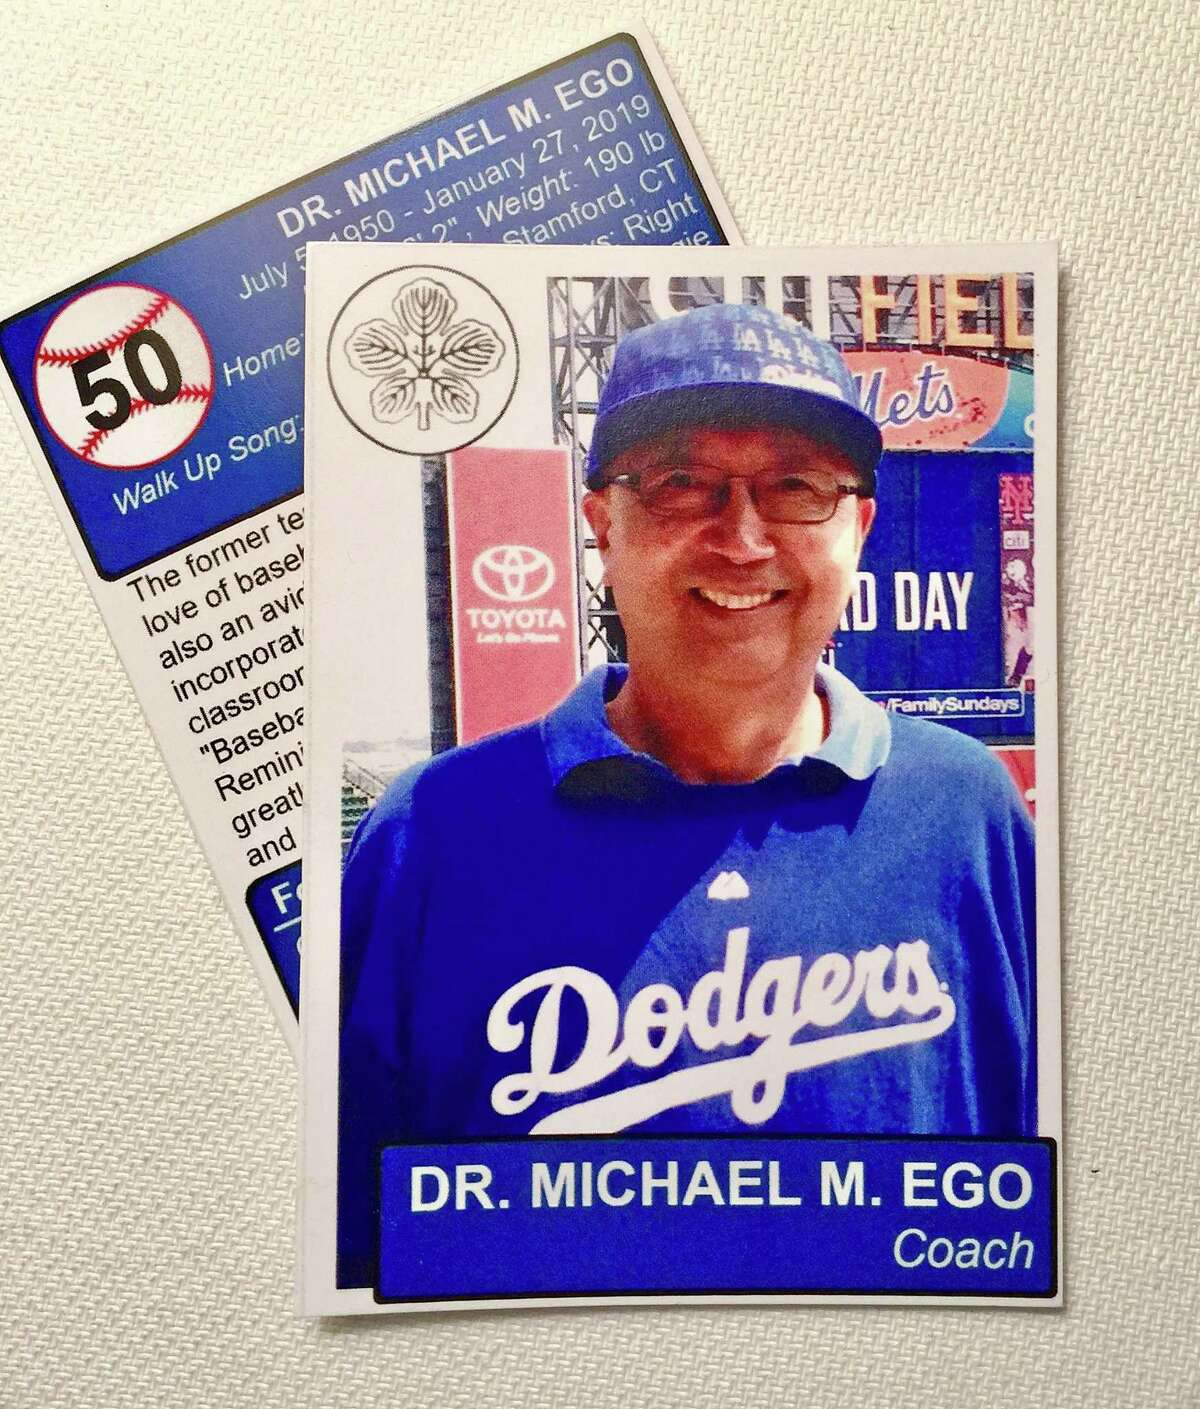 A faux baseball card of University of Connecticut professor Michael Ego, who died Jan. 27, 2019 at age 68. Ego started a baseball reminiscence program at River House Adult Day Center in Greenwich.